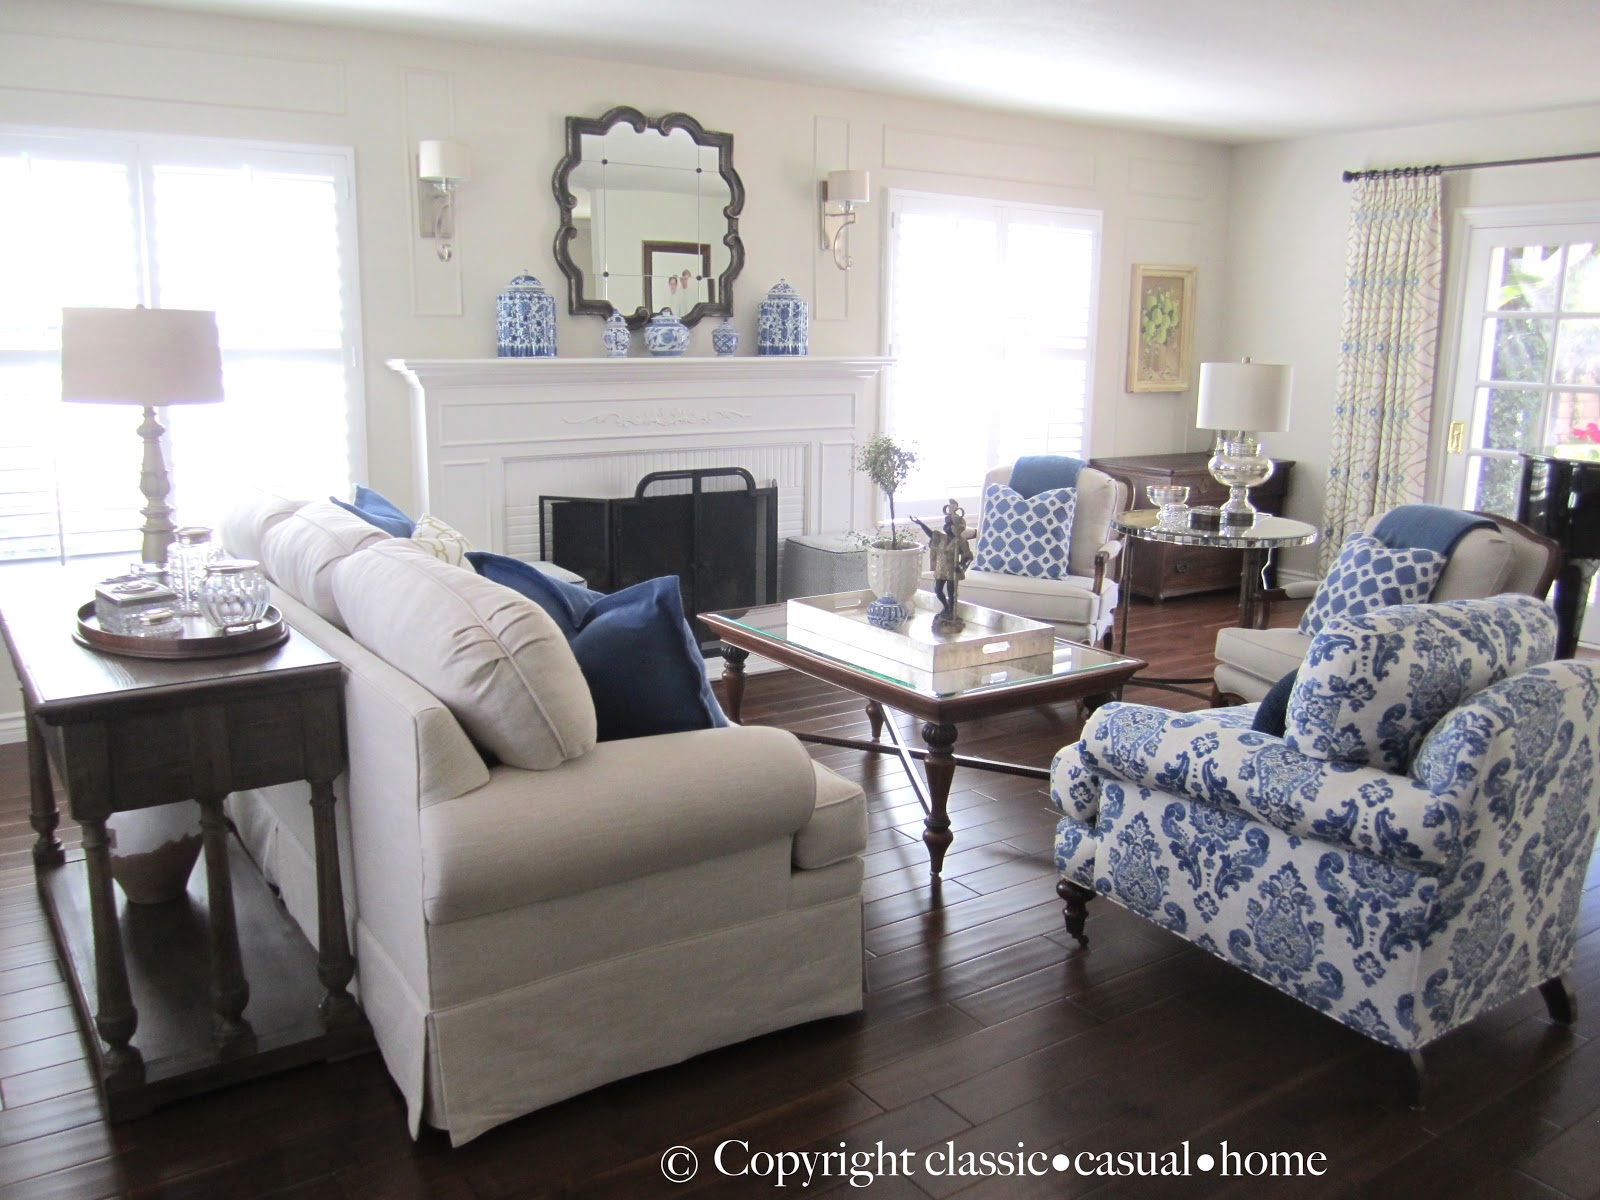 Blue white and silver timeless design classic casual home for Timeless home design